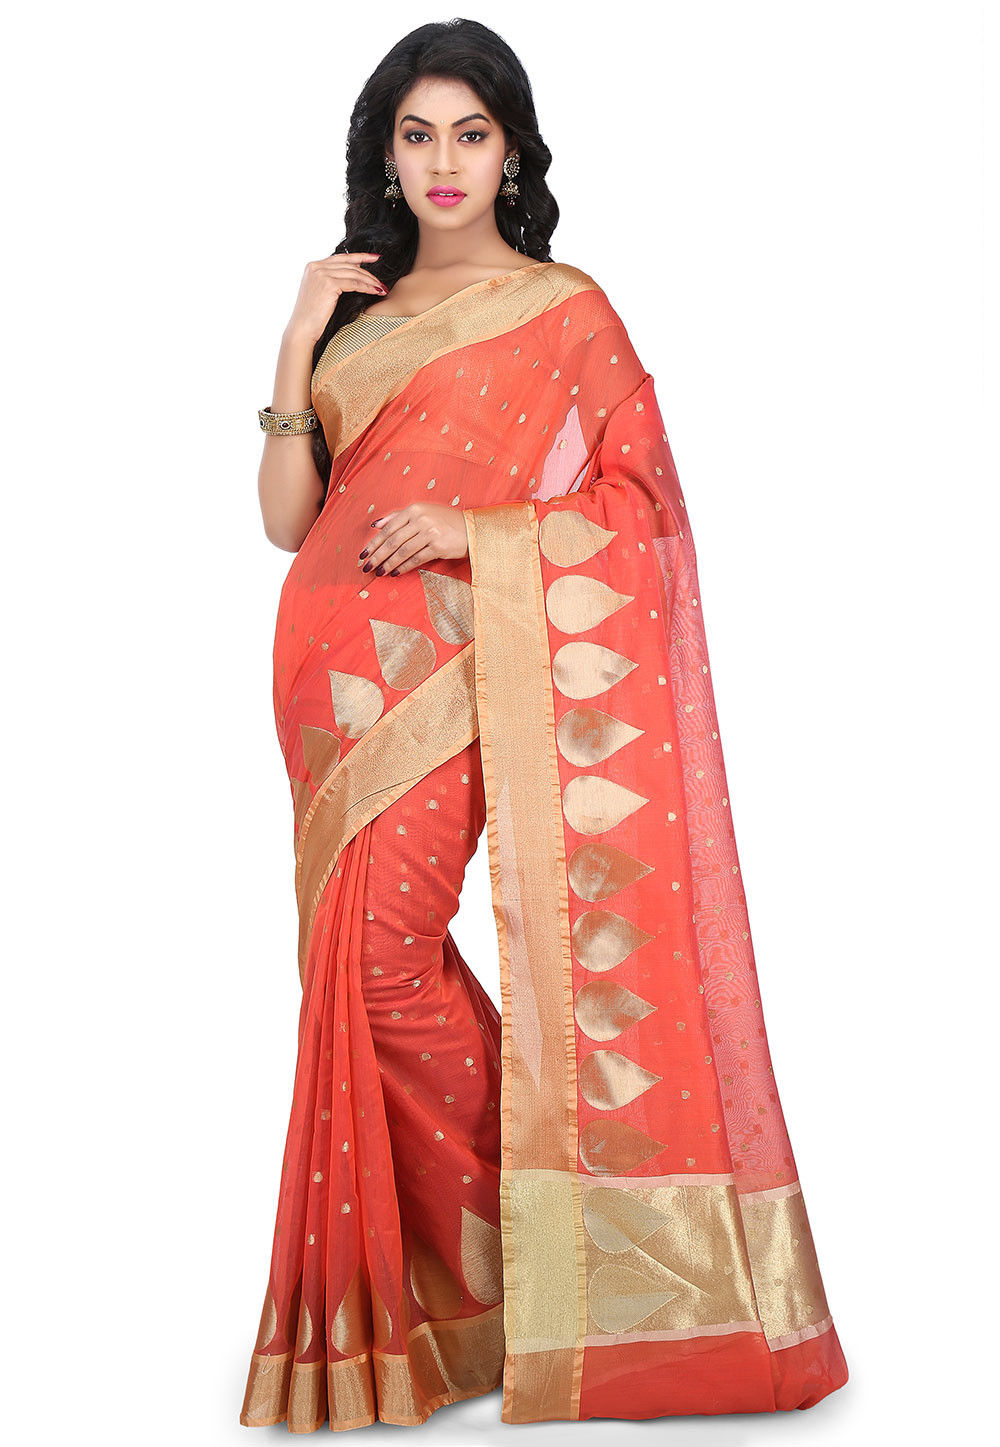 Woven Chanderi Silk Saree in Coral Red